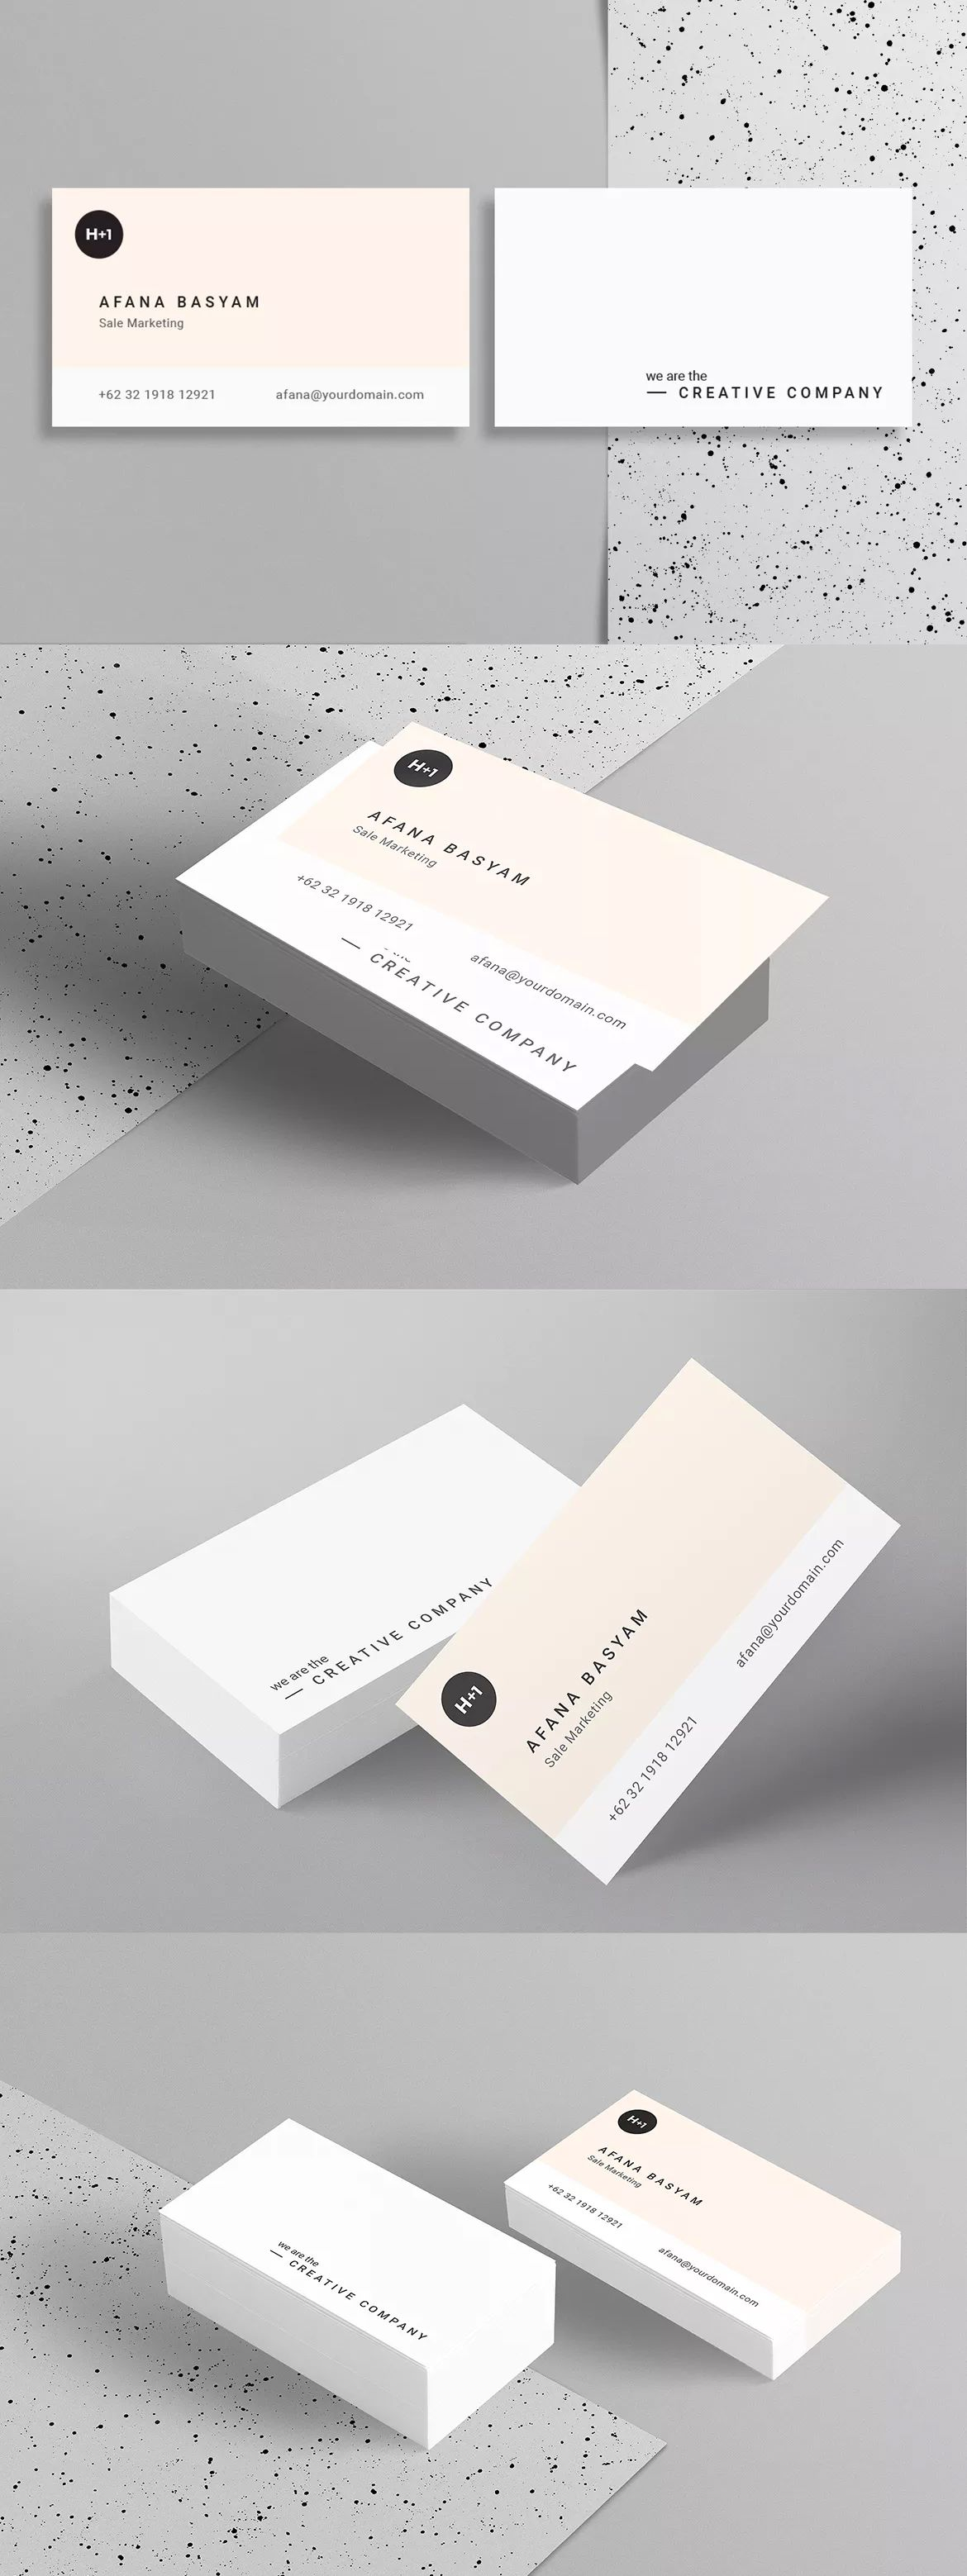 Business Card Template Indd Business Card Graphic Business Card Inspiration Business Card Branding